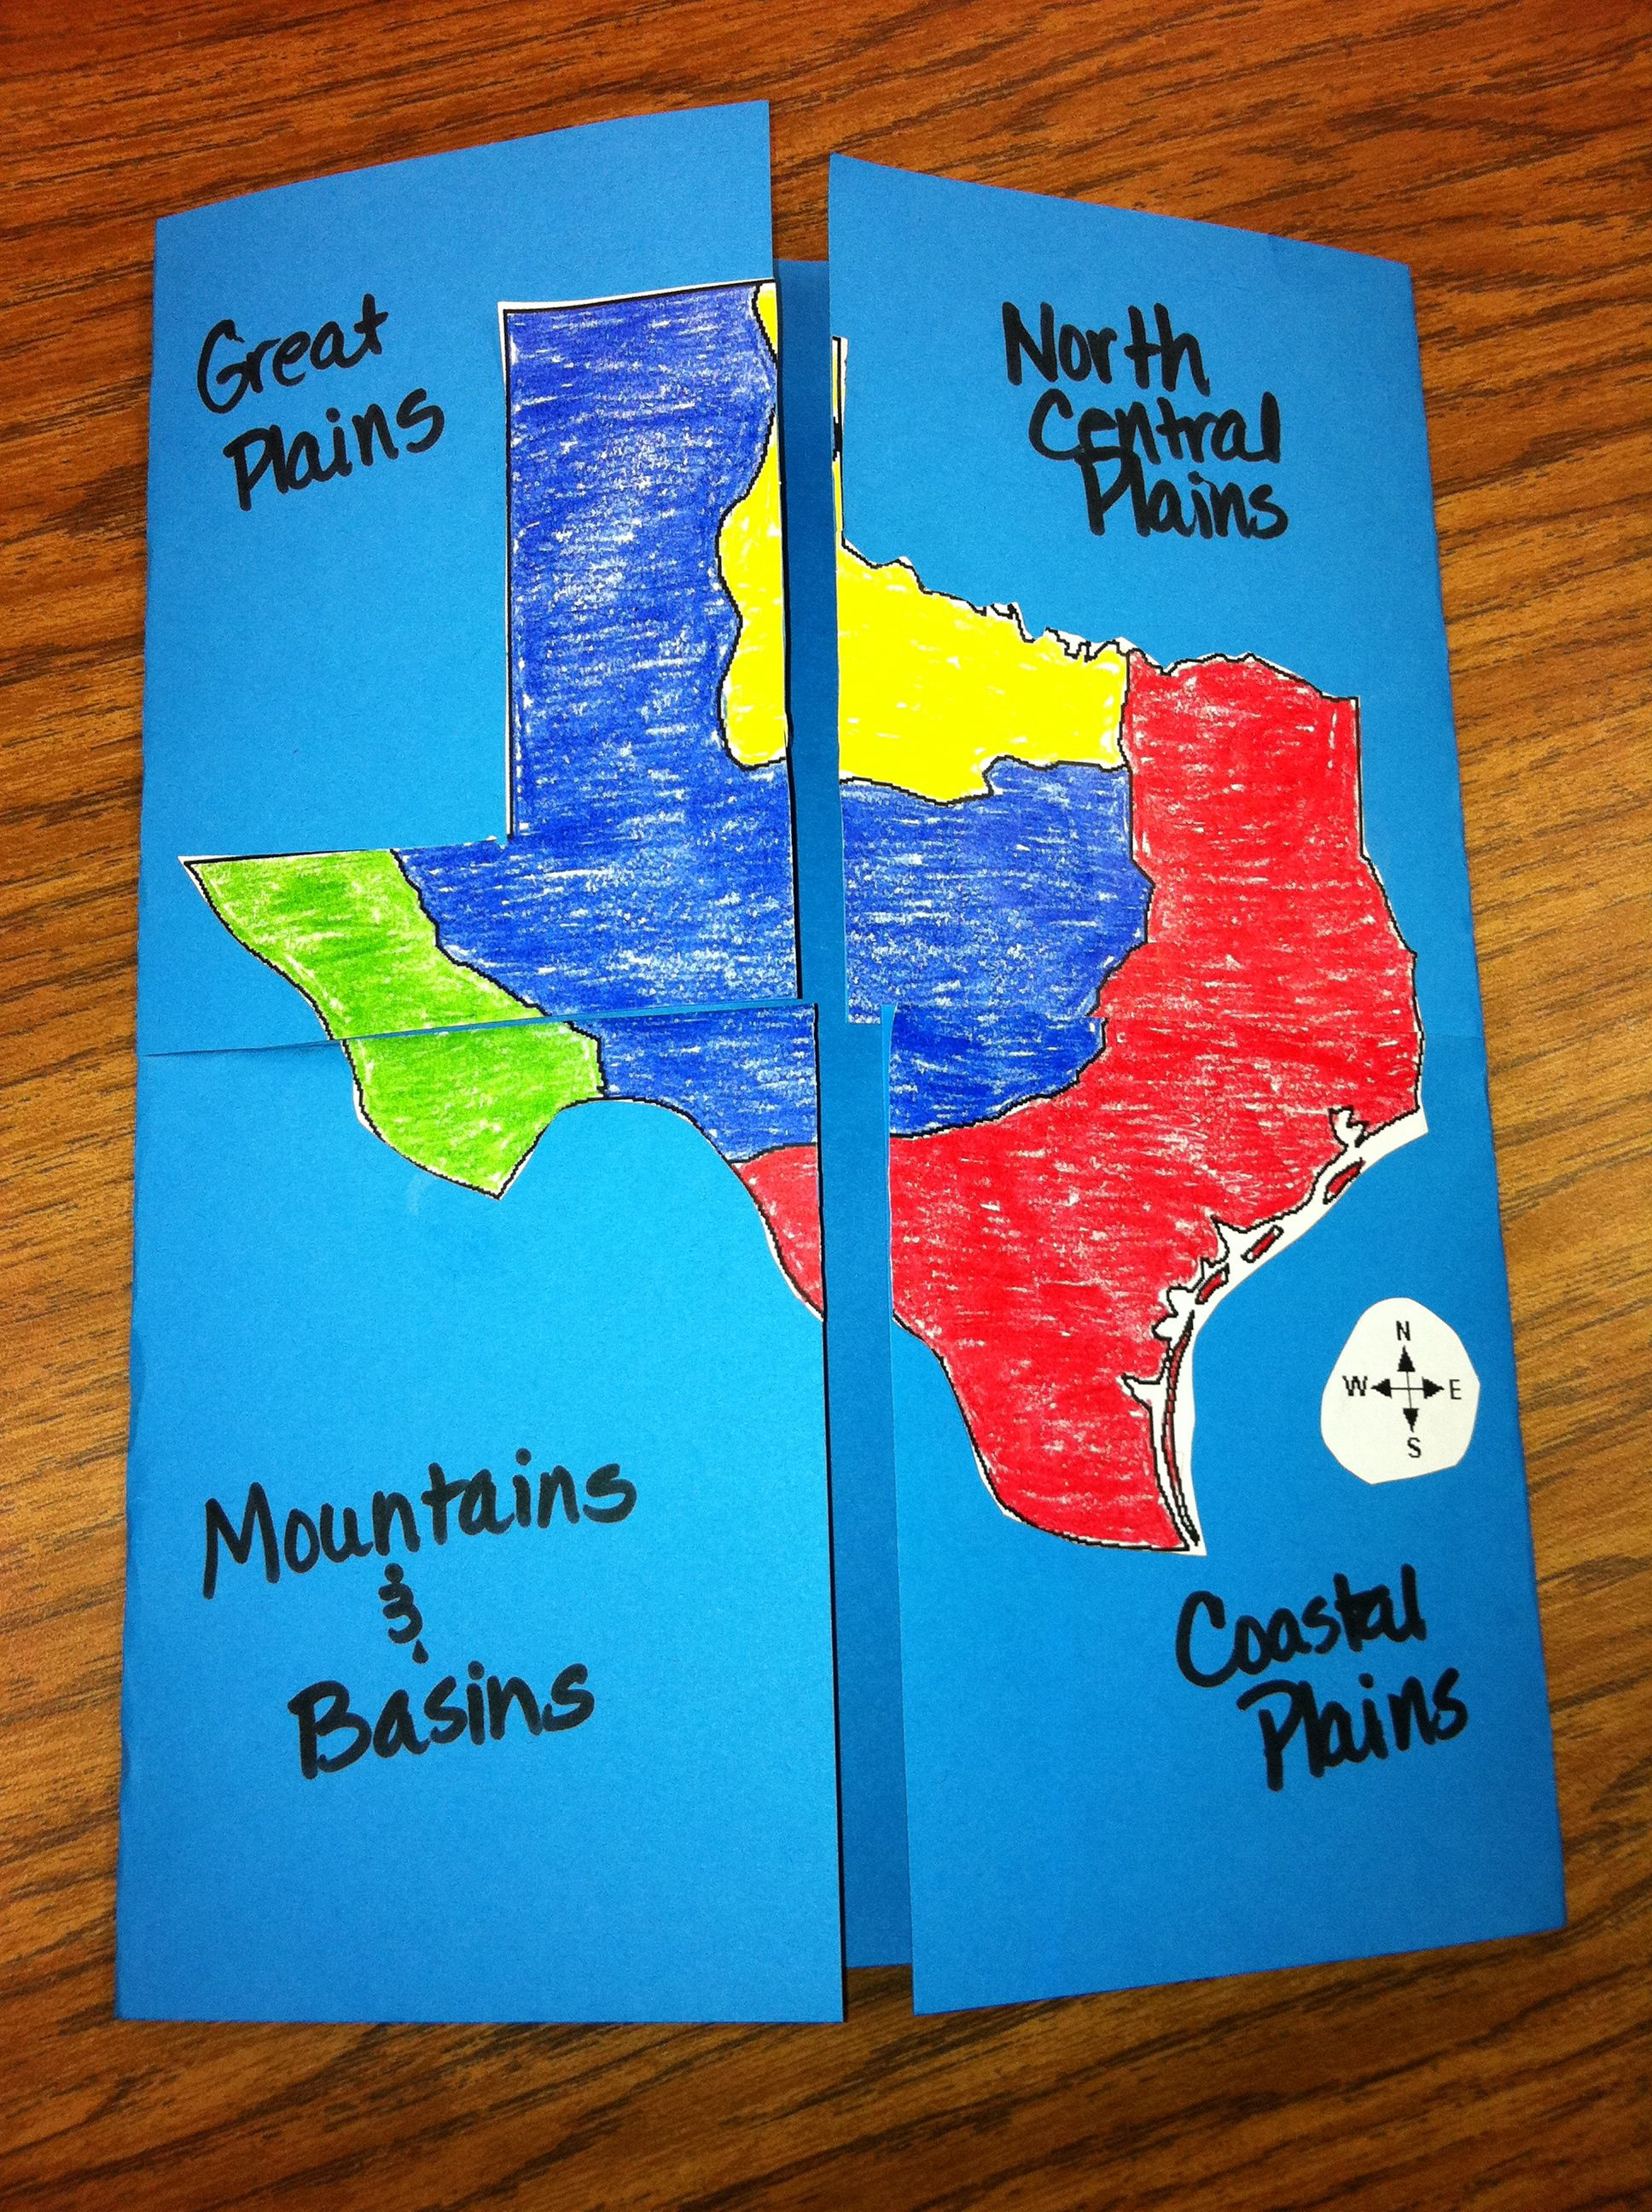 Regions Of Texas Map 4th Grade.Texas History Four Regions Foldable This Foldable Is A